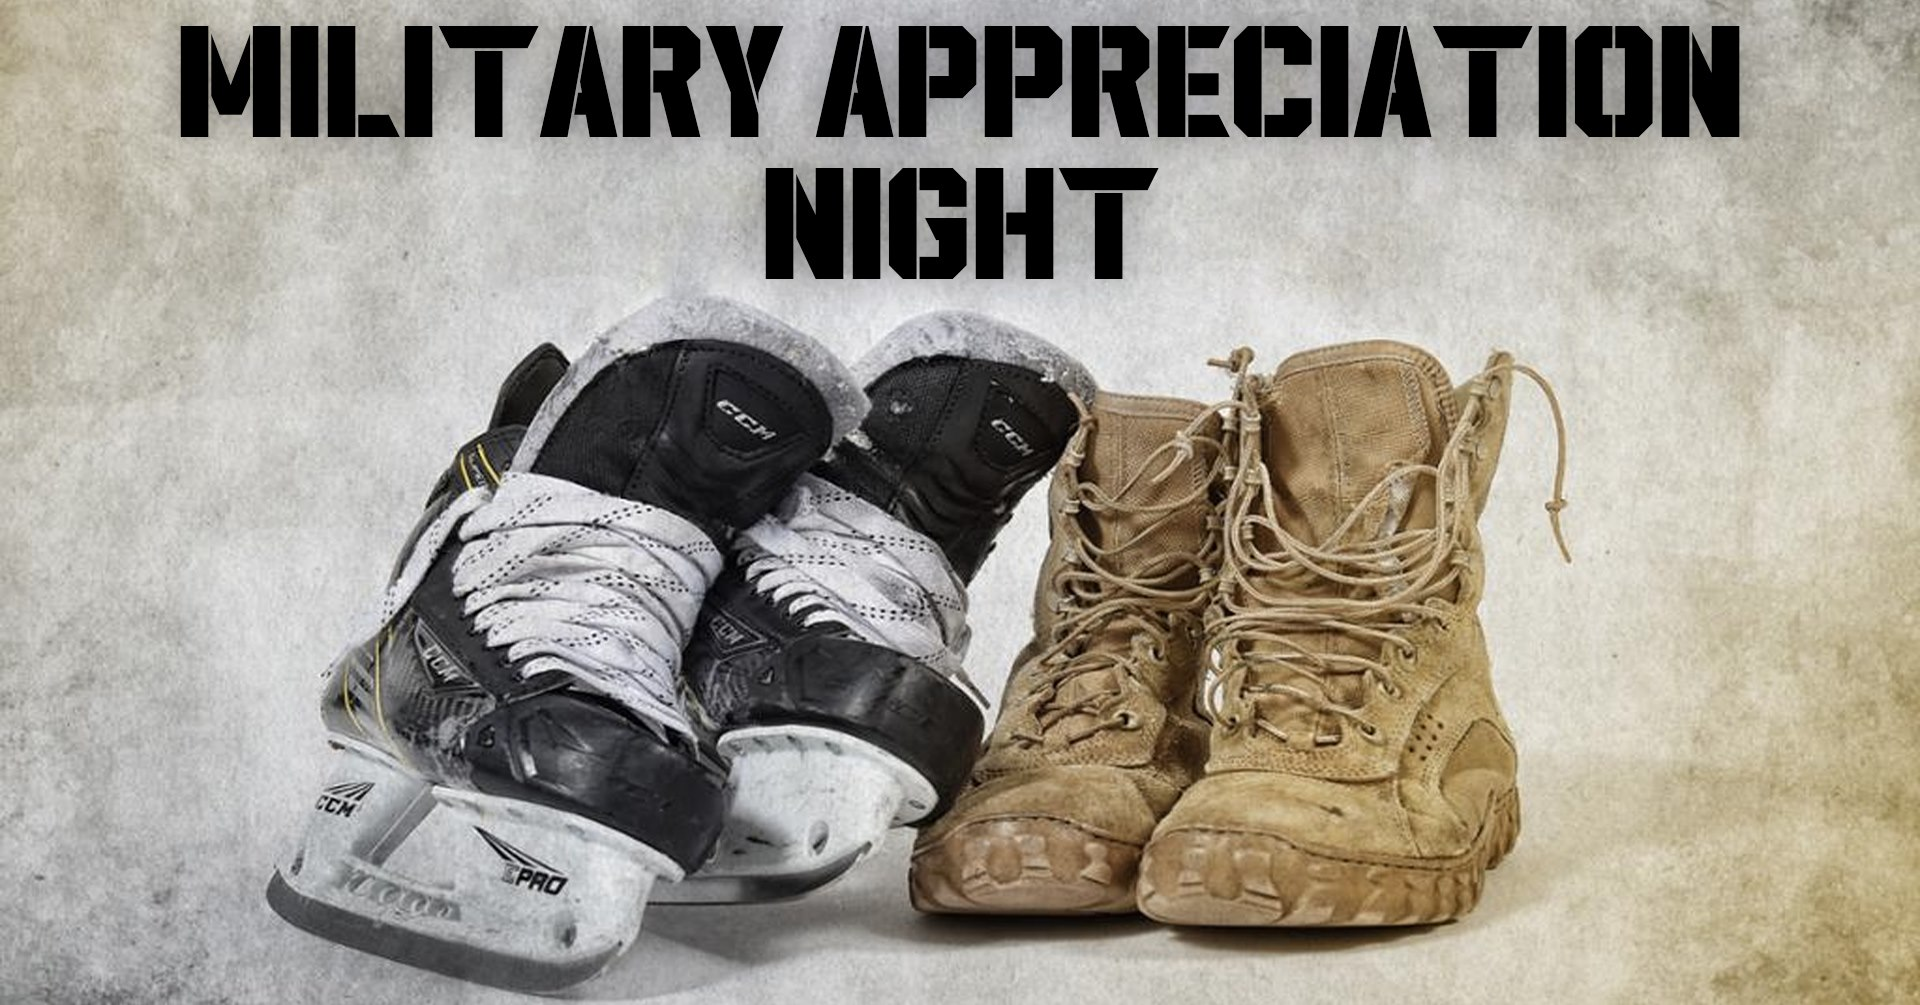 Knoxville Ice Bears Military Appreciation Night